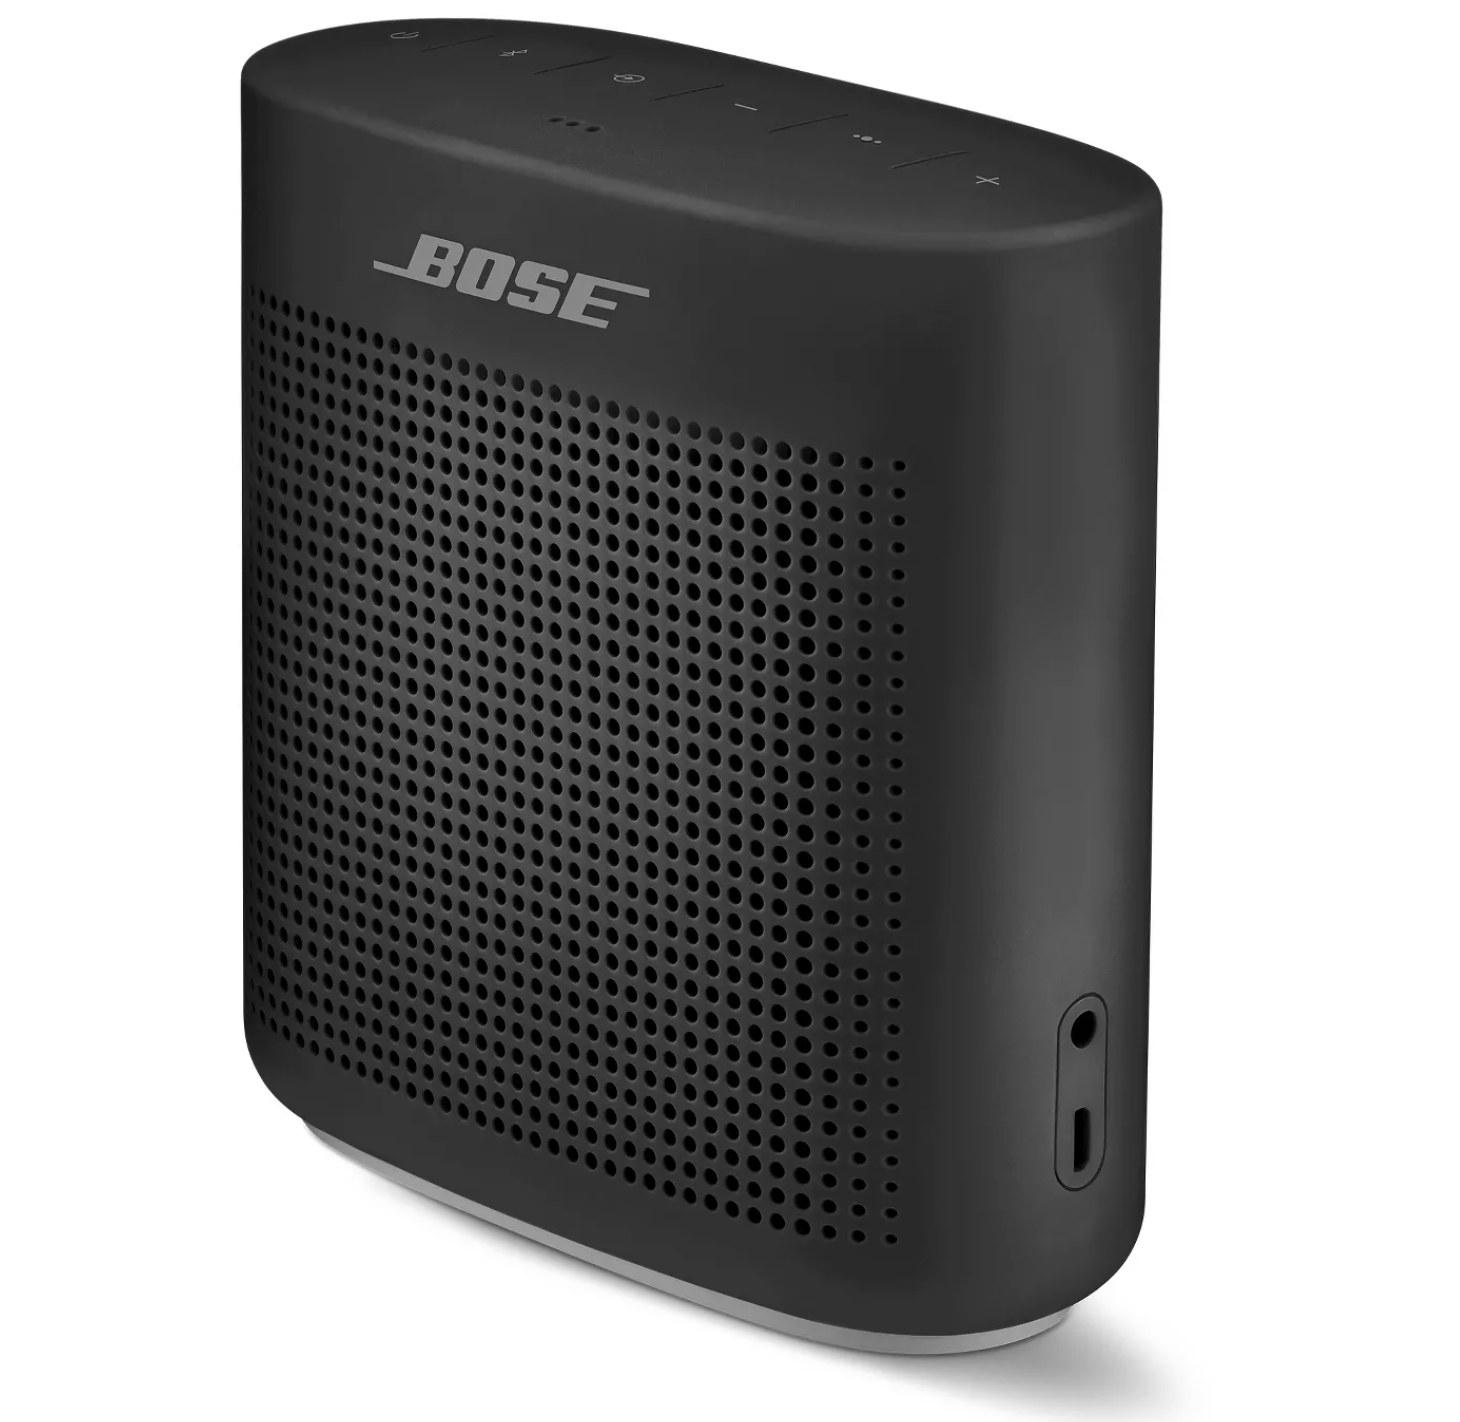 The Bose speaker